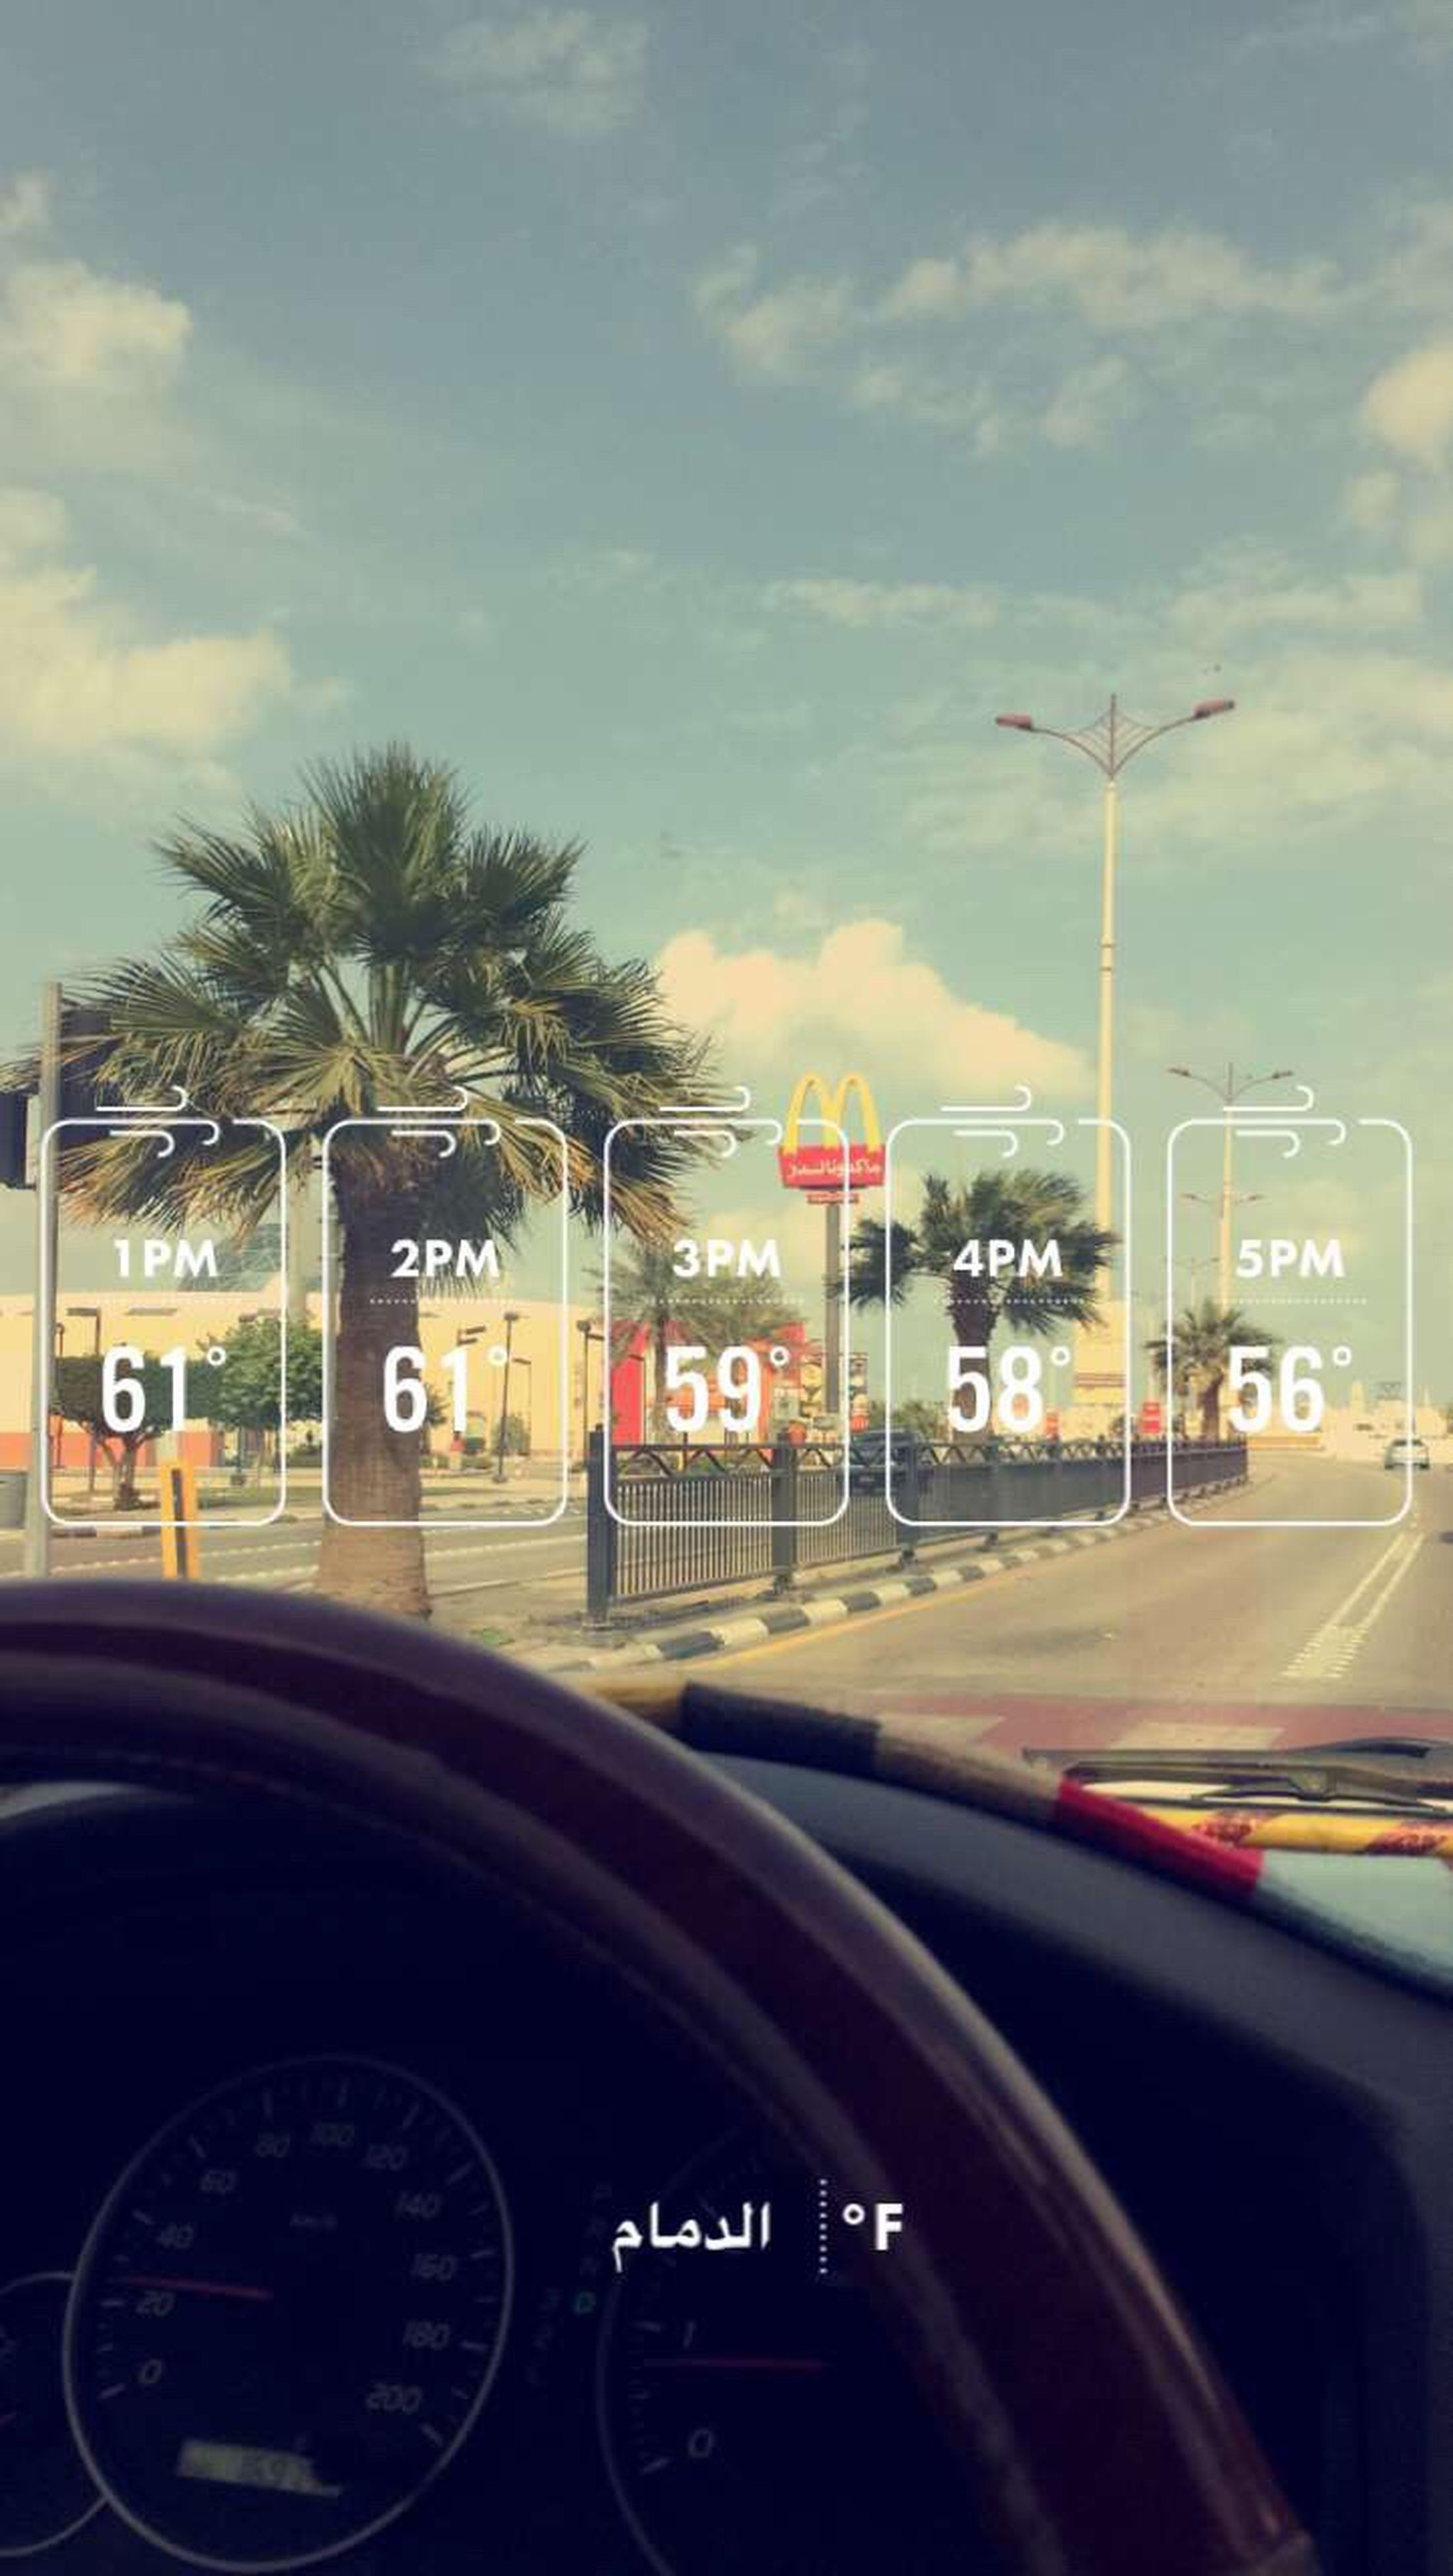 car, transportation, travel, cloud - sky, sky, tree, street light, mode of transport, road, no people, palm tree, day, outdoors, vehicle mirror